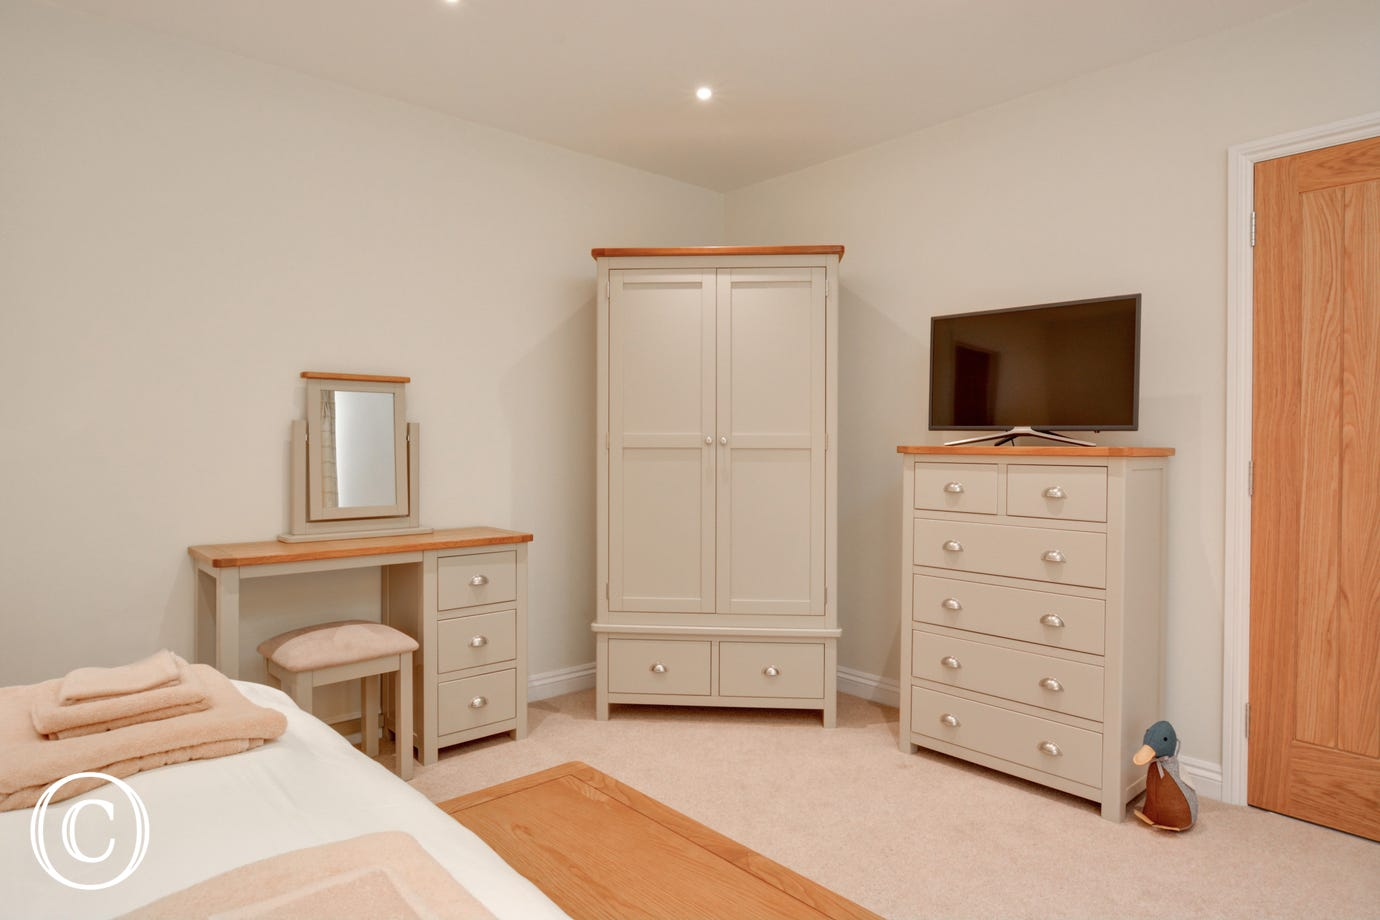 View of bedroom furniture and TV